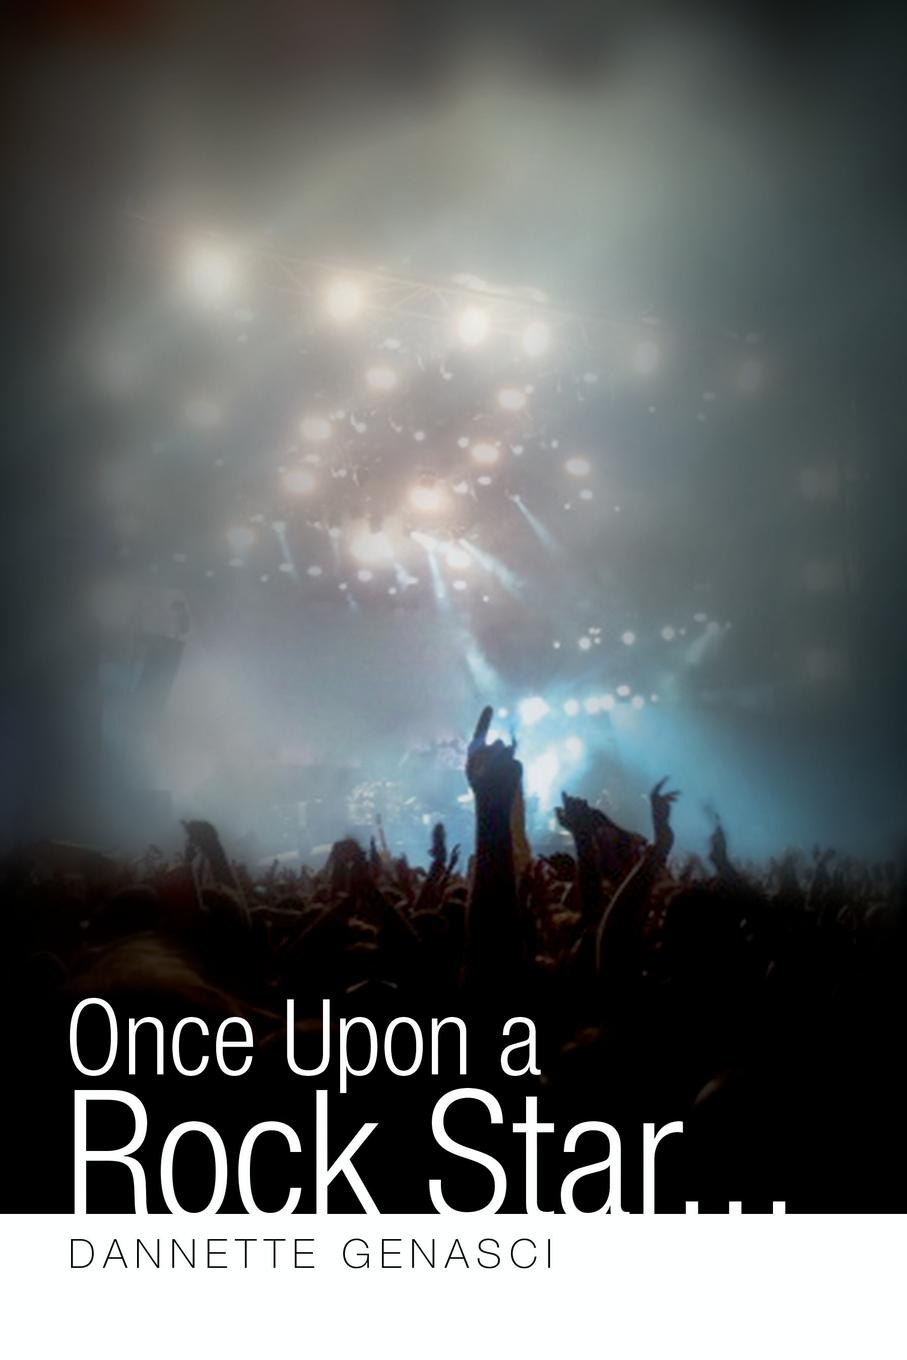 Dannette Genasci Once Upon a Rock Star... lea ann vandygriff seasons once upon my innocence